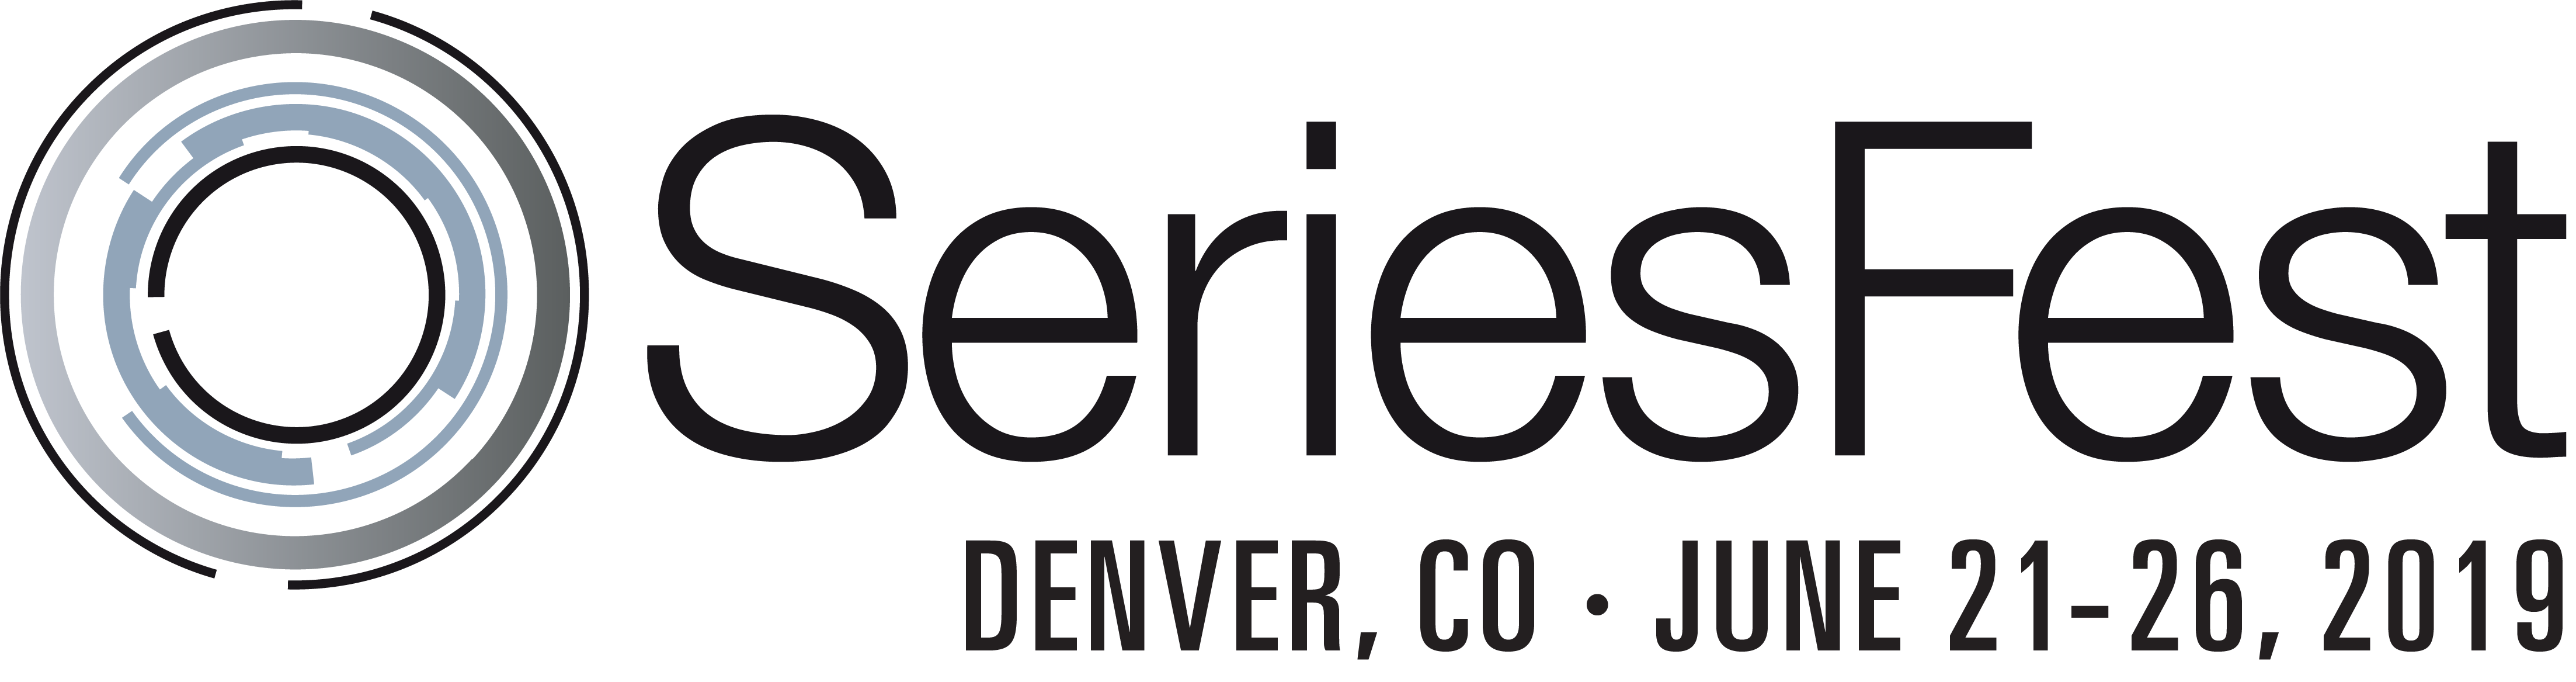 Seriesfest Announces Additional Special Events Screenings And Panels Completing The Season Five Slate For June 21 26 Broadcasting Cable